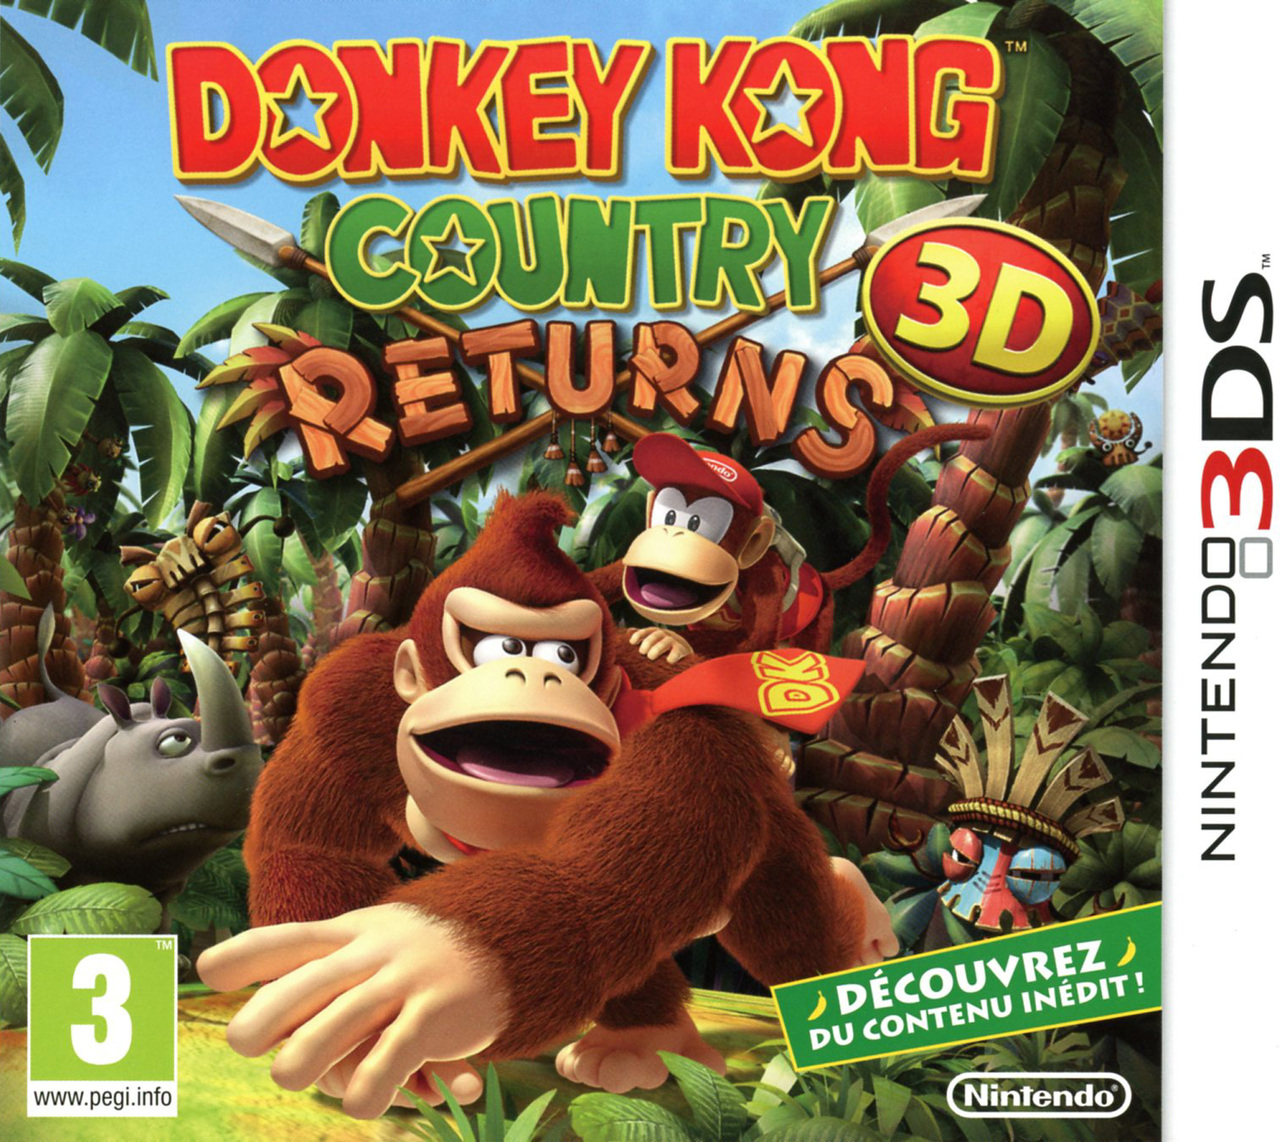 donkey-kong-country-returns-3d-3ds-eshop